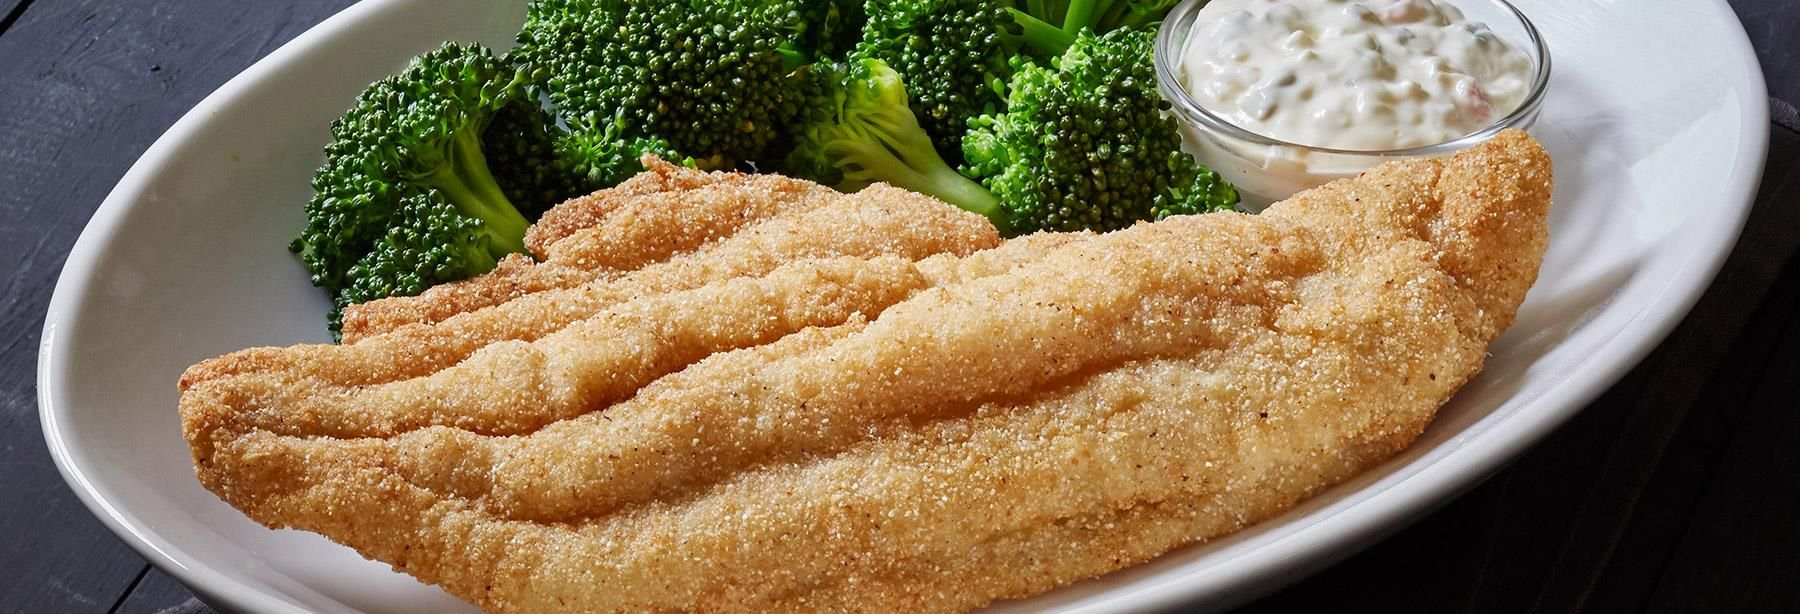 FarmRaised Catfish Red Lobster Seafood Restaurants